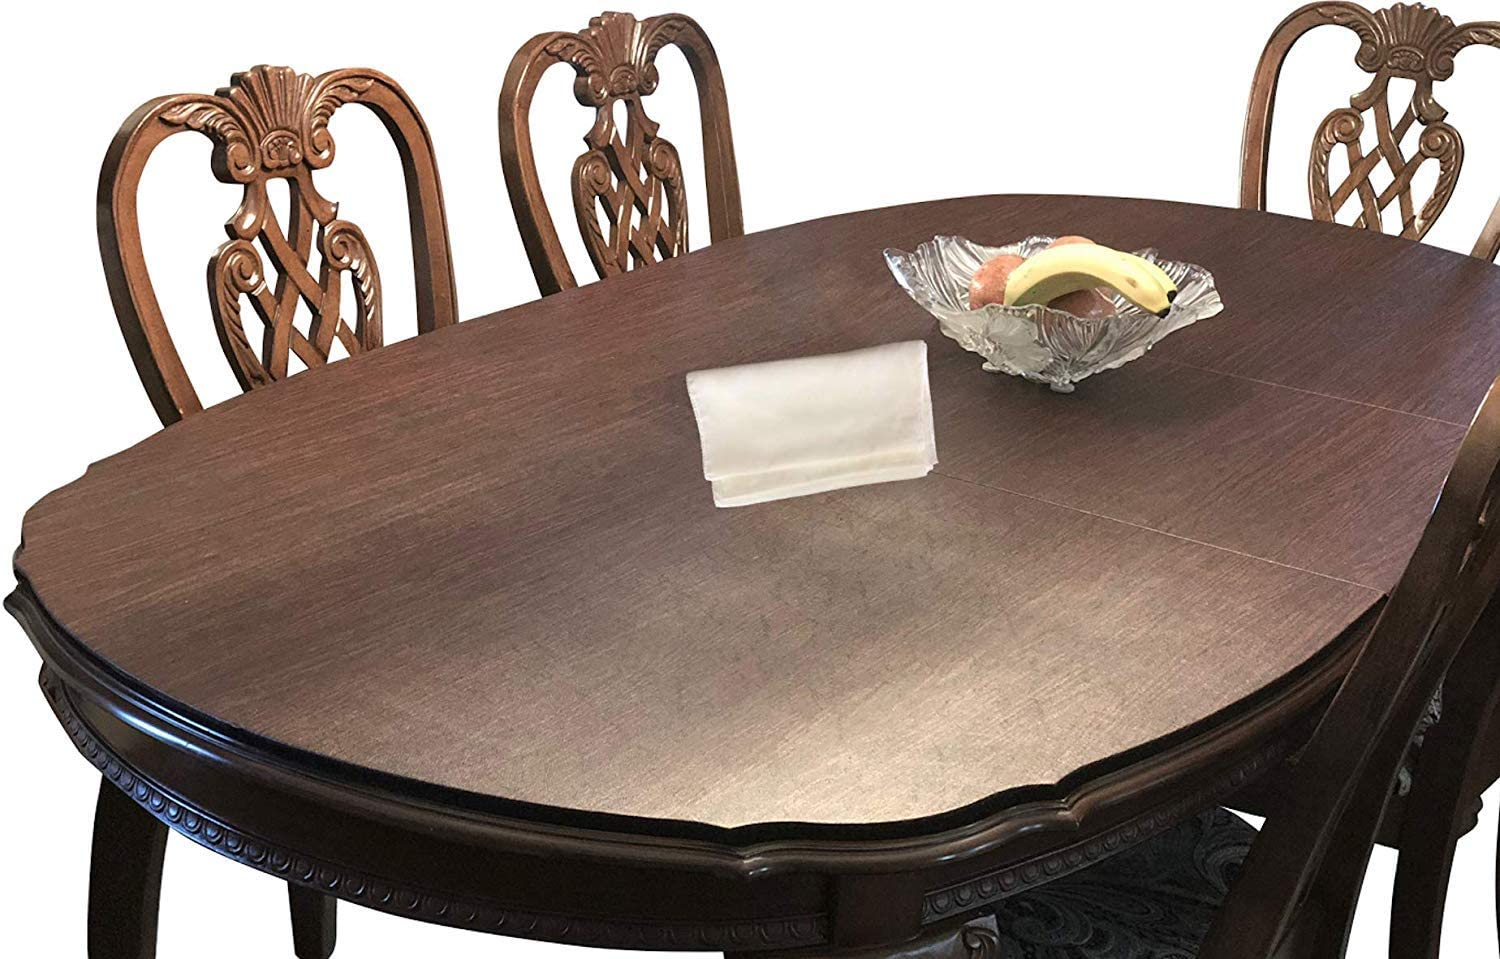 Custom Made Table Pads For Dining Table With 2 Leaf Extension Pads Included Amazon Ca Home Kitchen